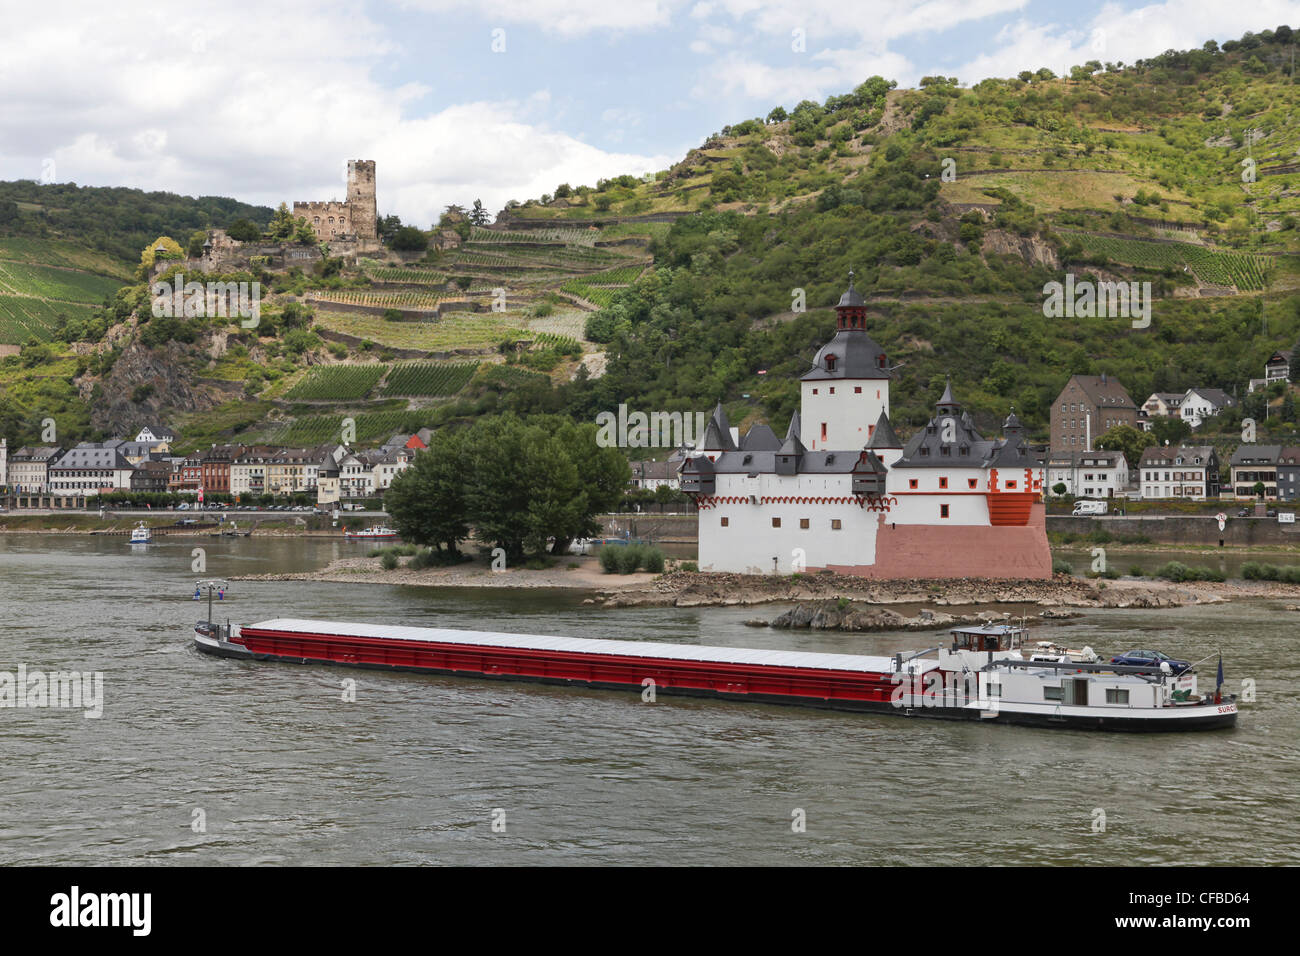 Ship, boat, ships, boats, Germany, river, flow, water, Rhine, Rhineland, Palatinate, transport, ship, journey, load - Stock Image